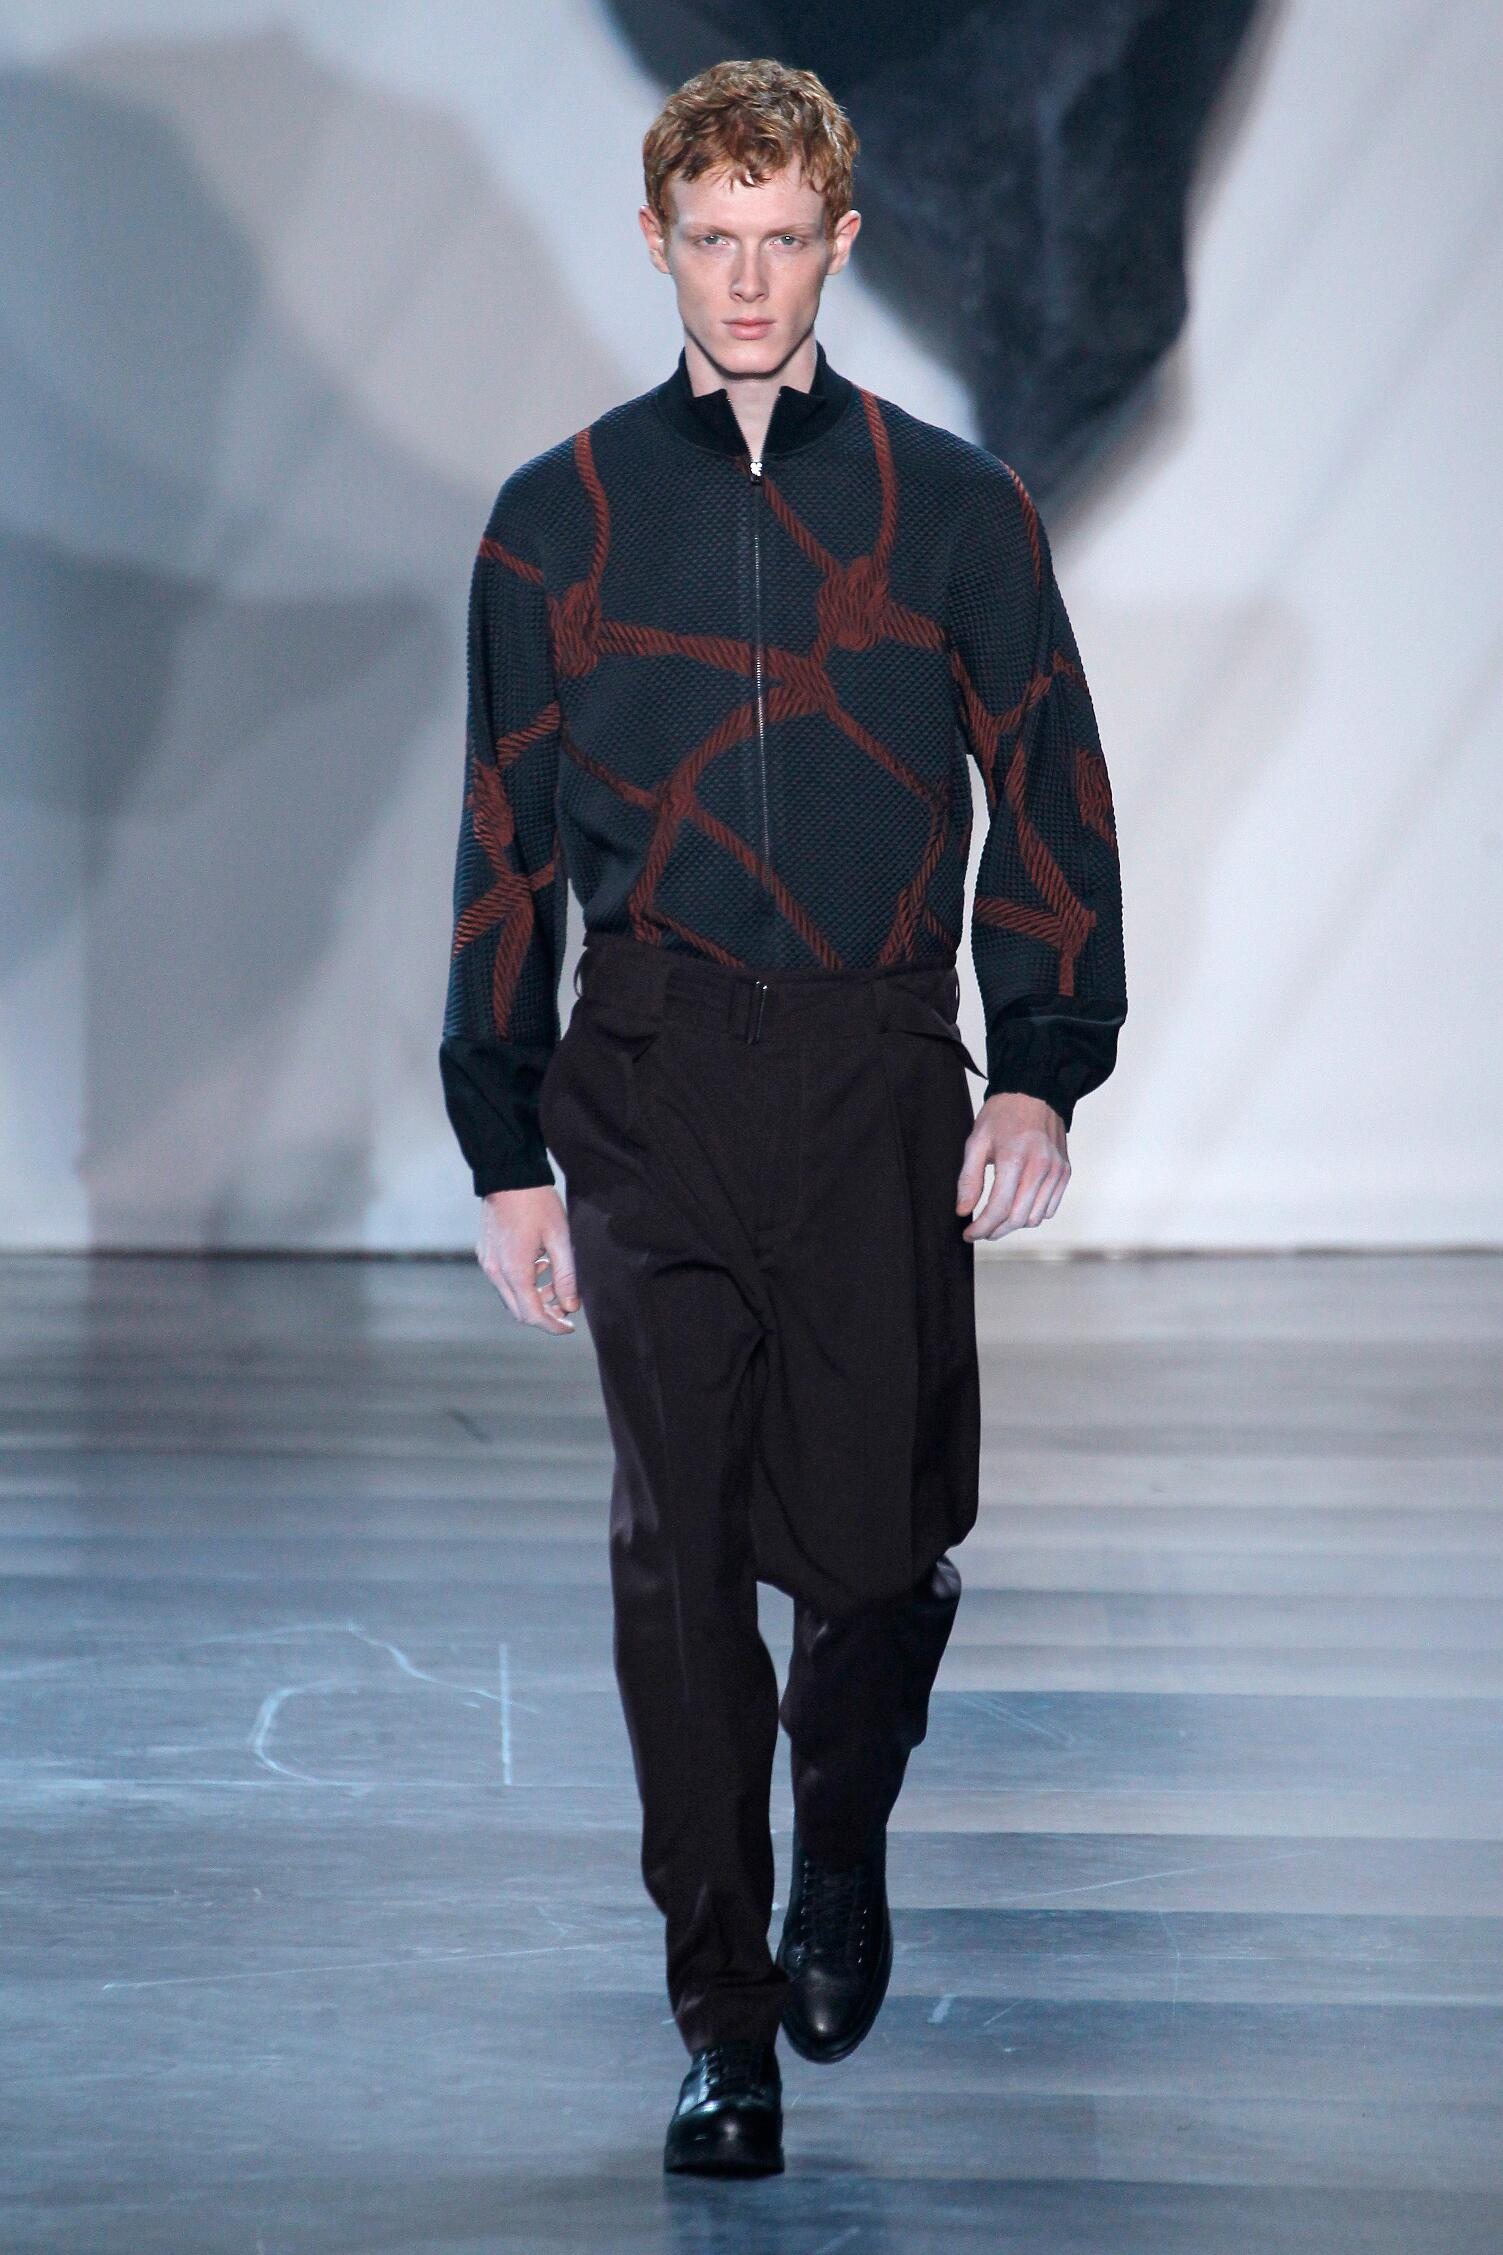 Fall 3.1 Phillip Lim Collection Fashion Men Models